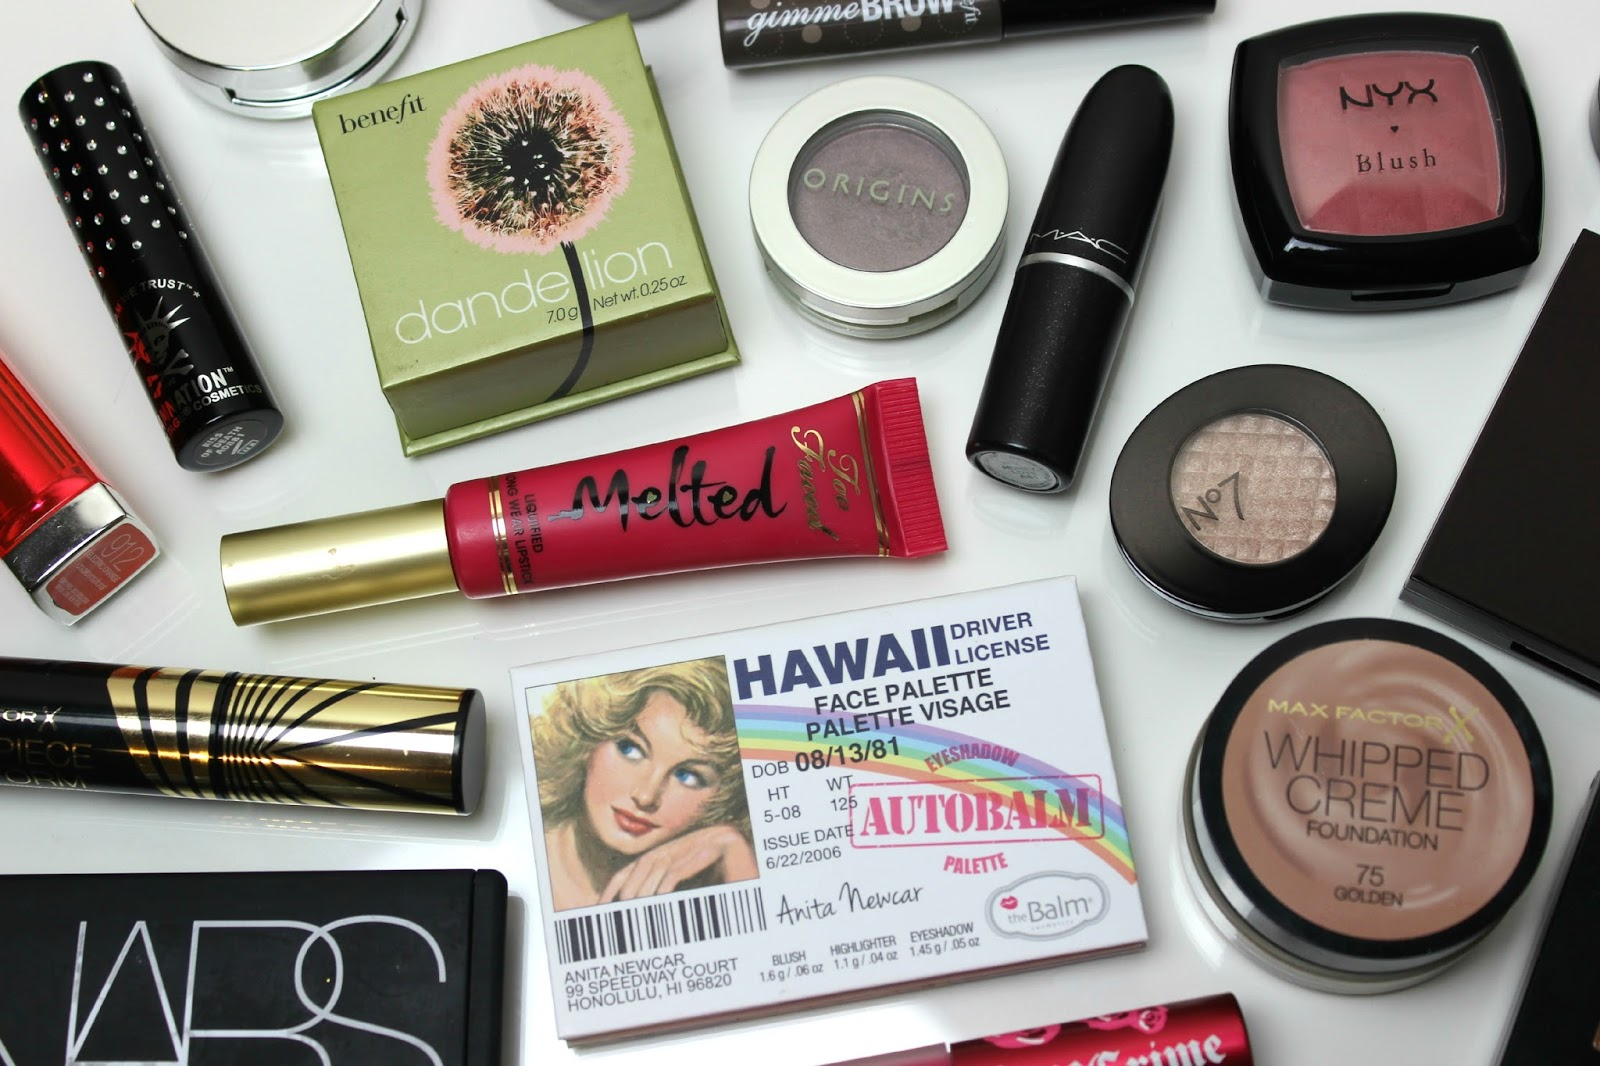 A picture of high-street and high-end beauty products